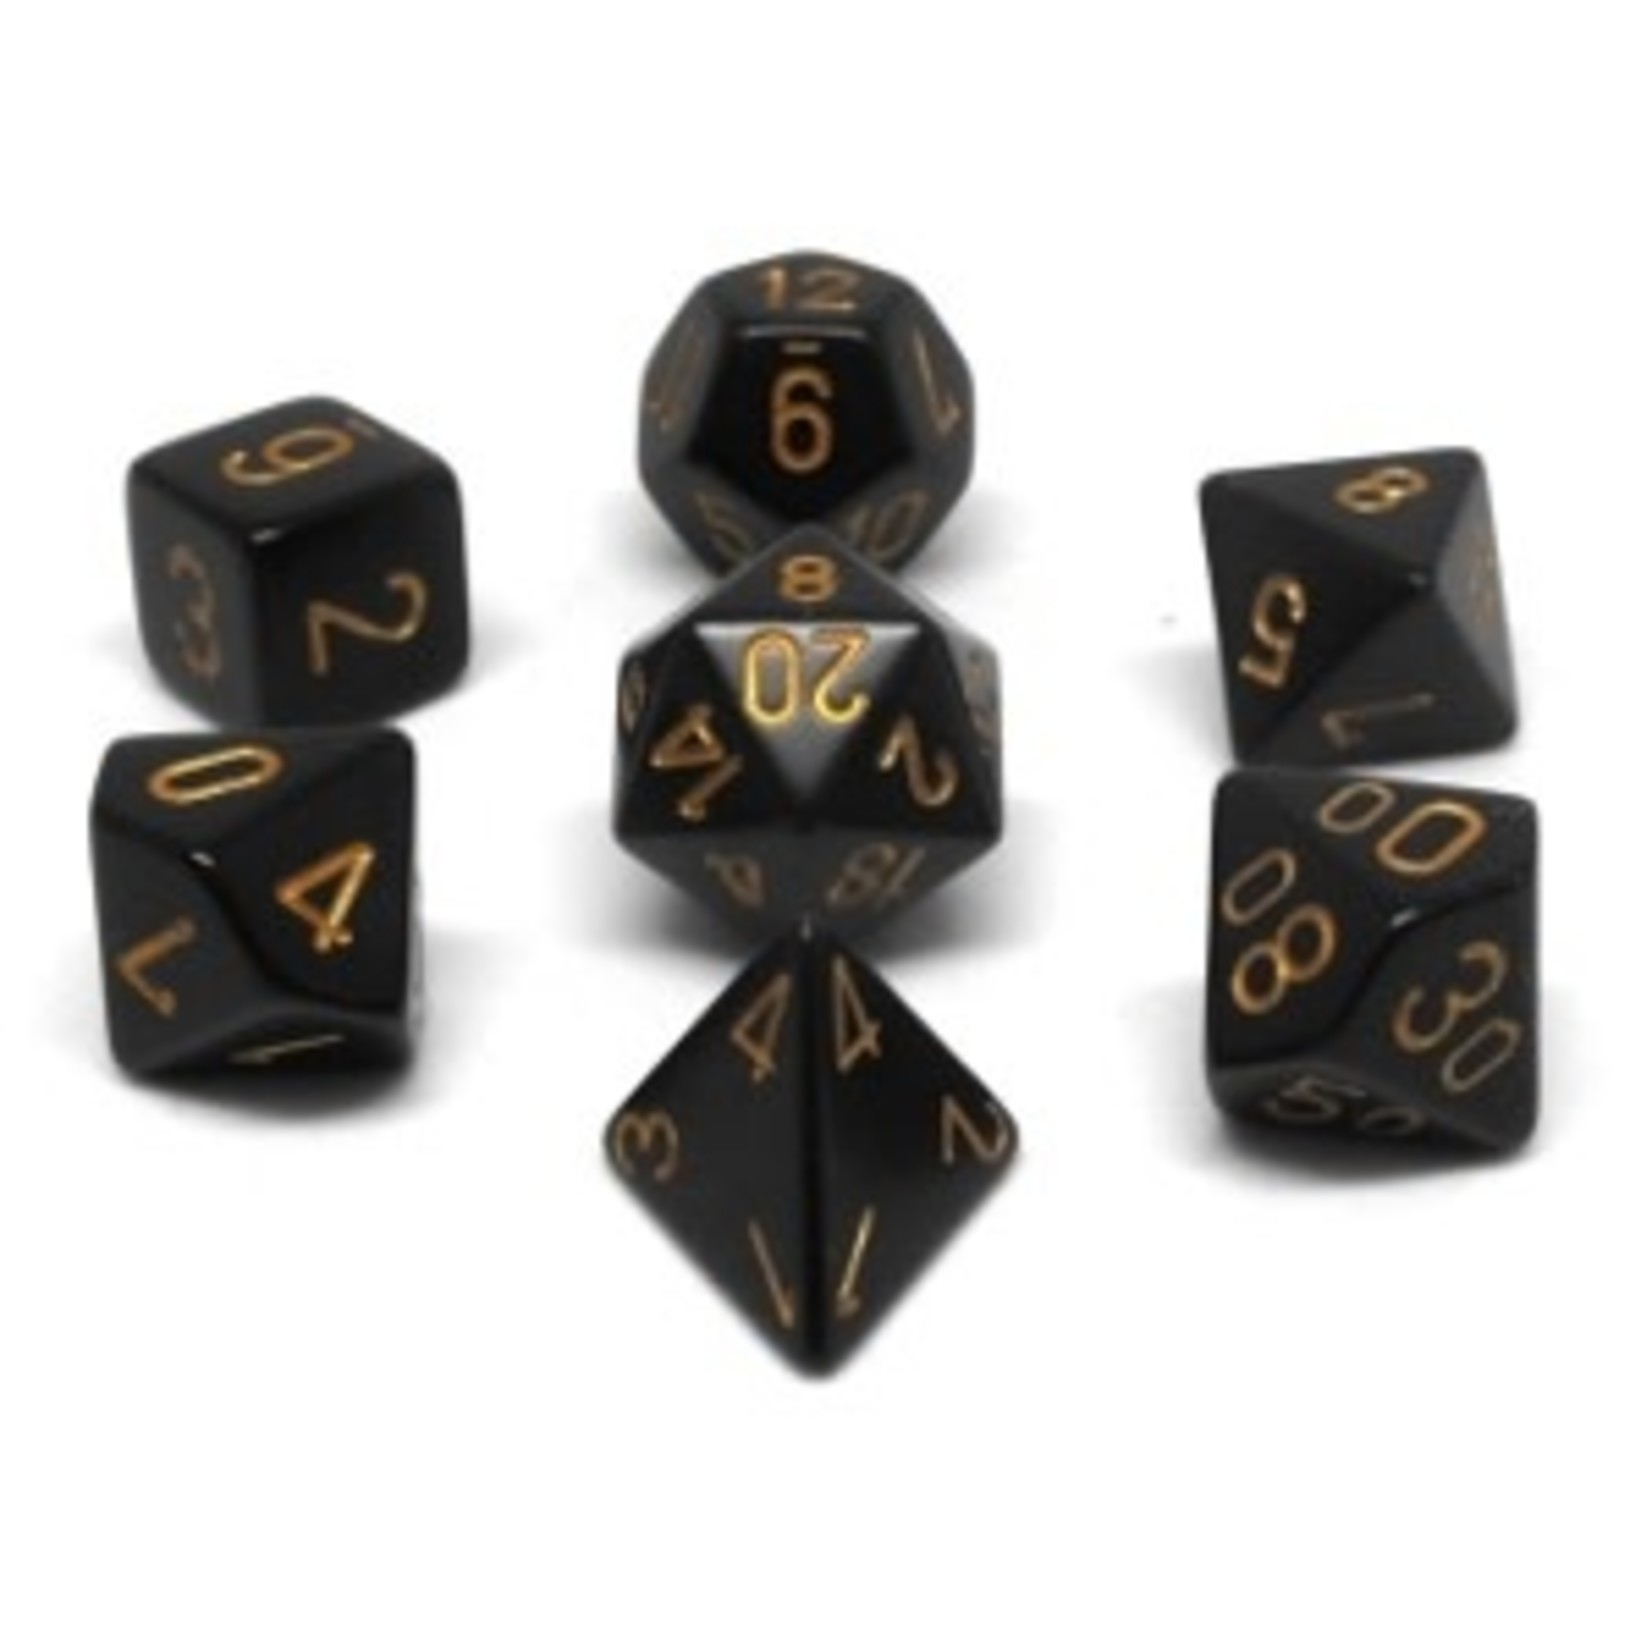 Chessex Set 7D Opaque Black with golden numbers